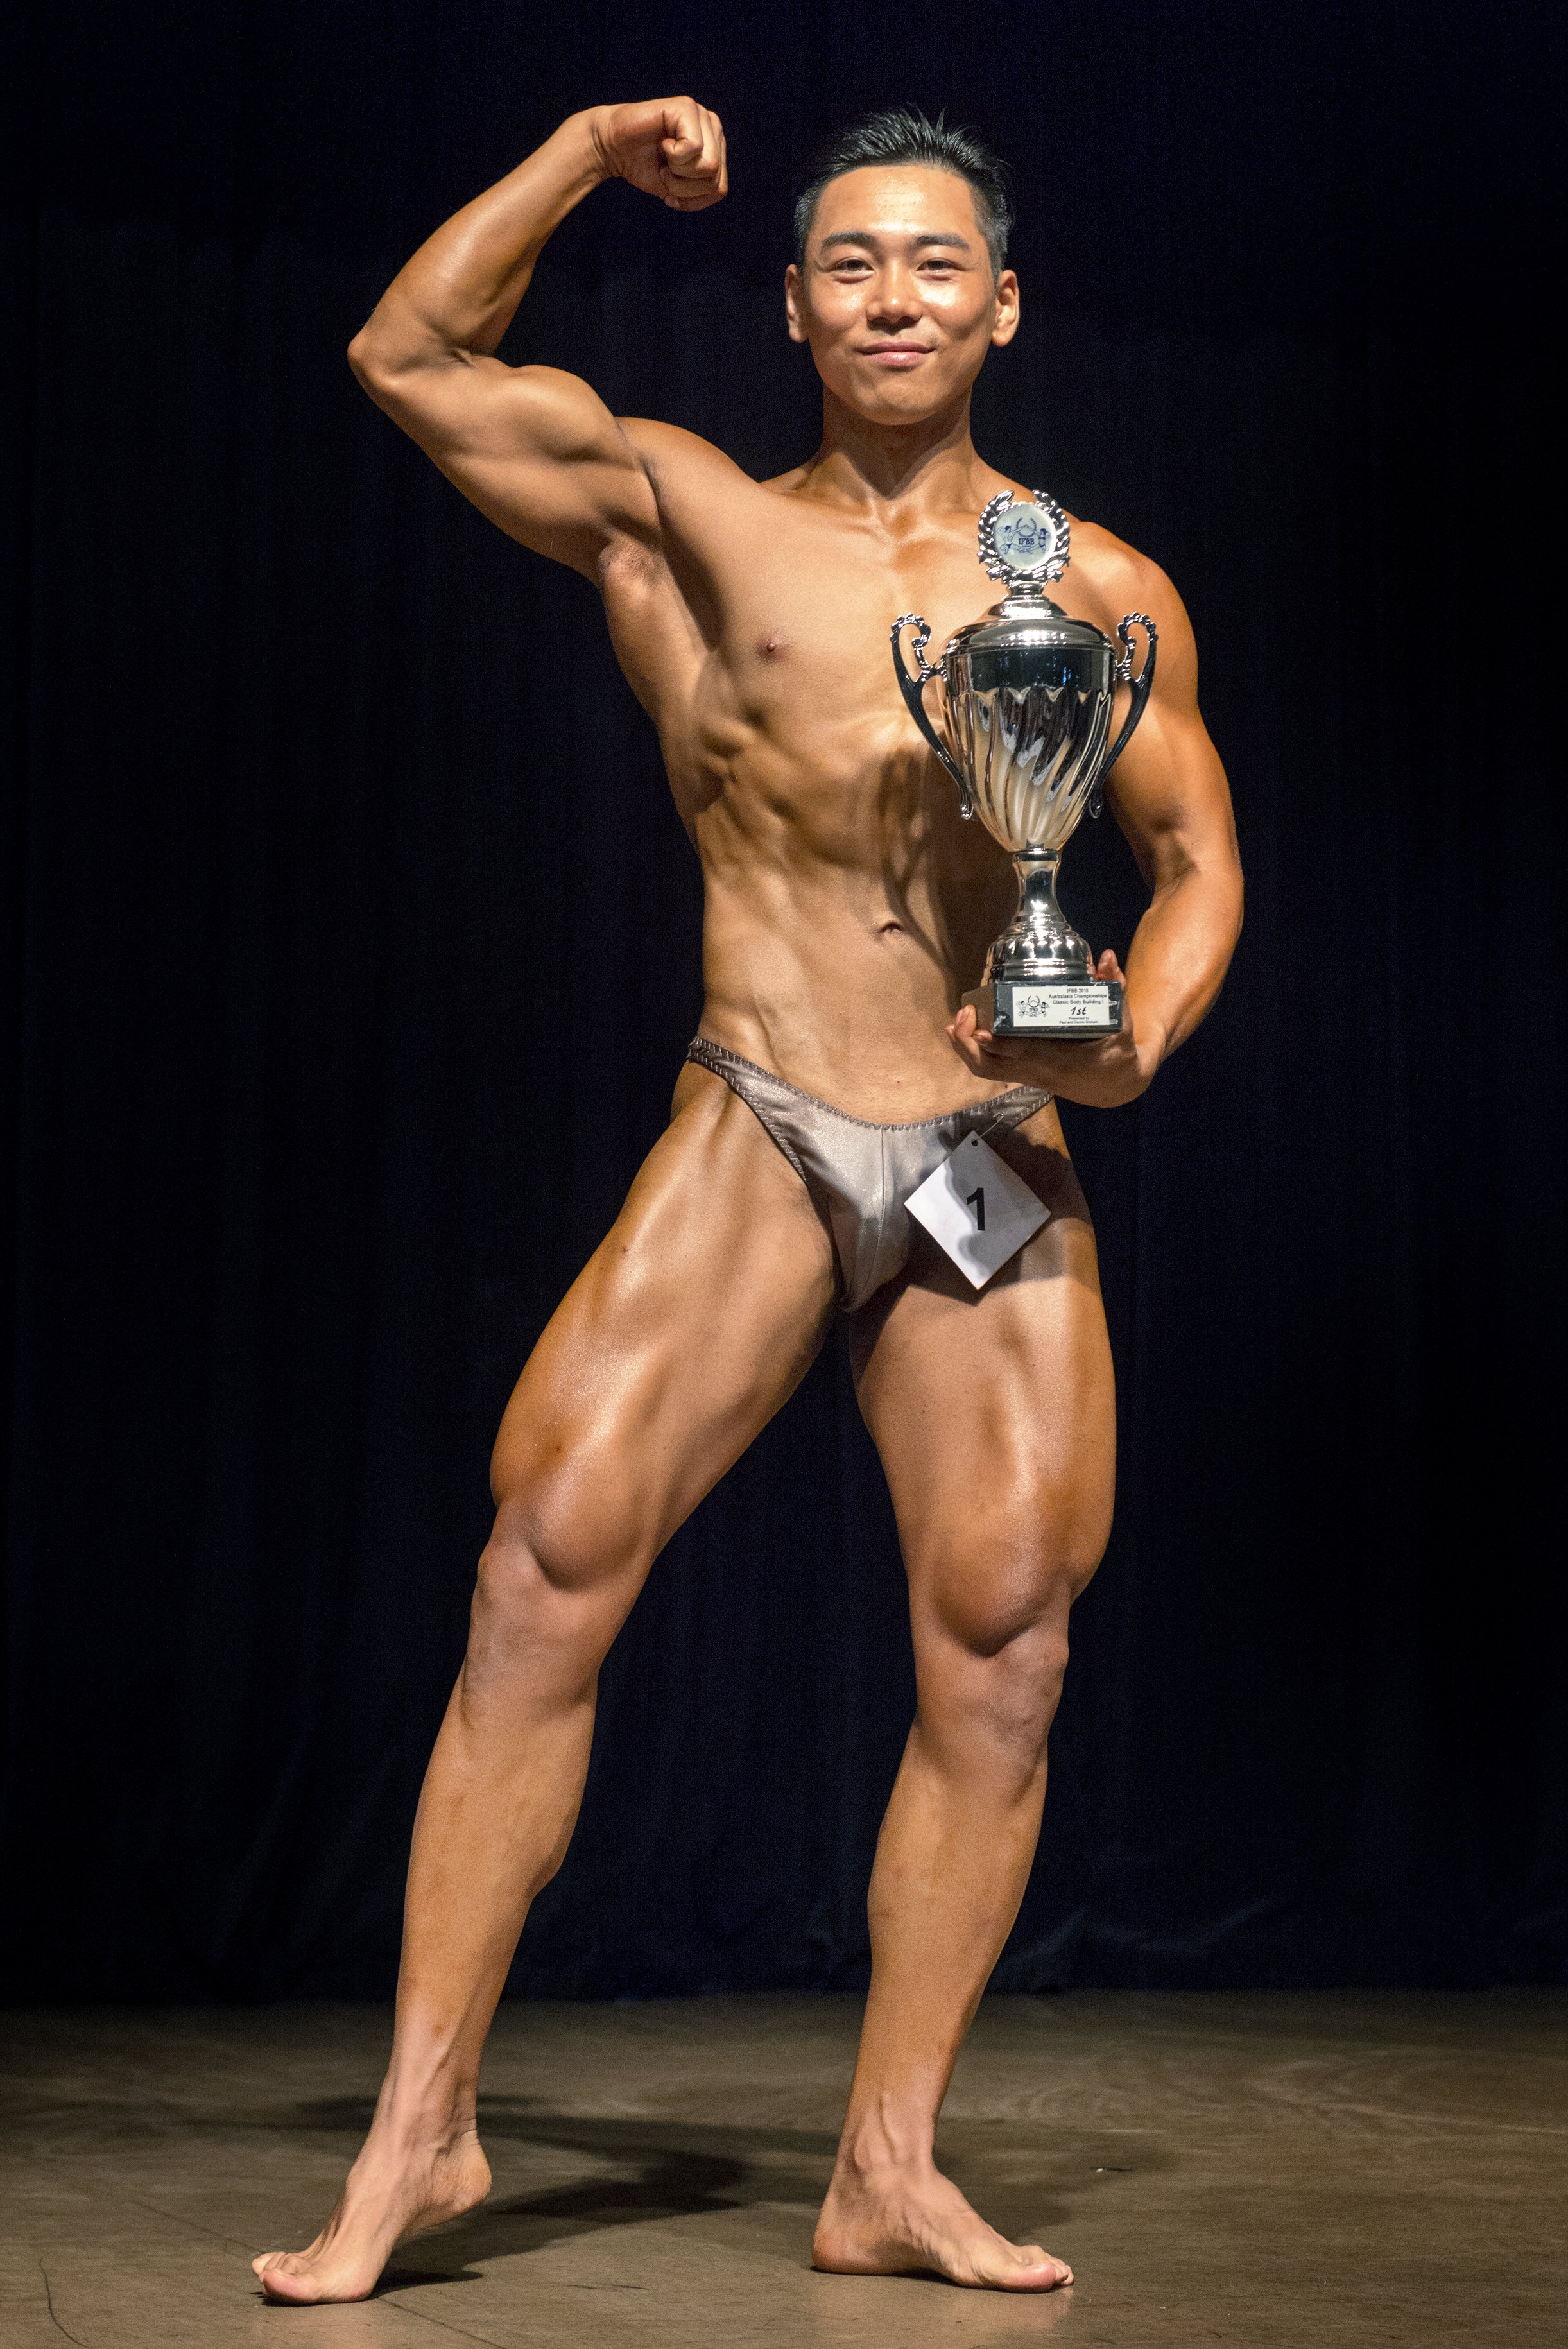 Steel city bodybuilding 2018 photos